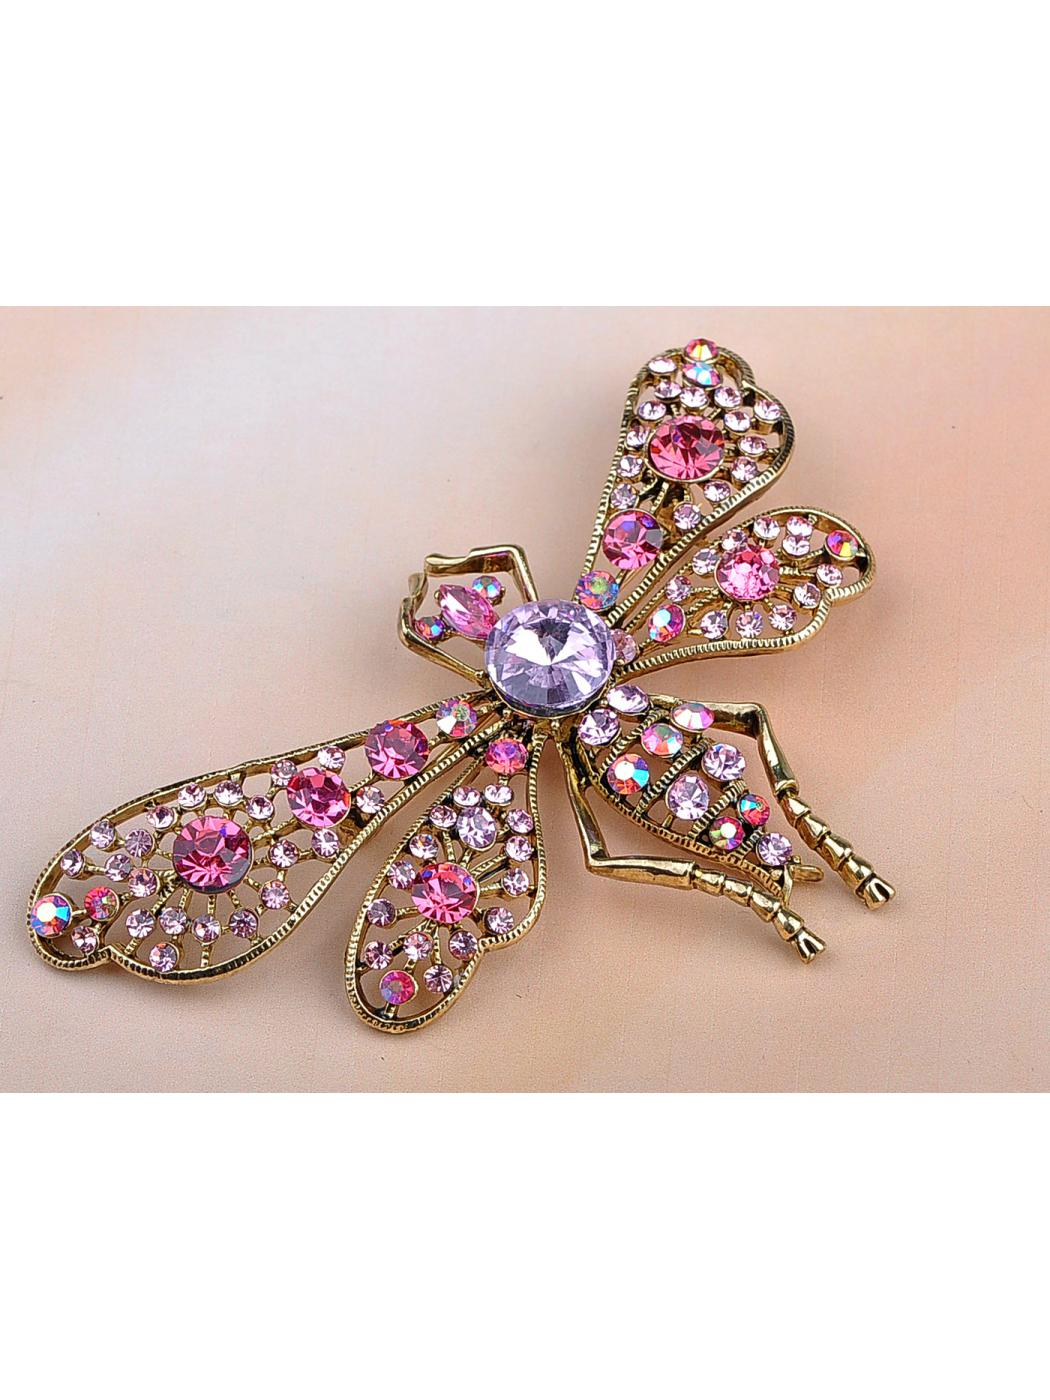 Fuchsia Tanzanite Crystal Rhinestone Gold Tone Mosquito Bug Fly Pin Brooch by